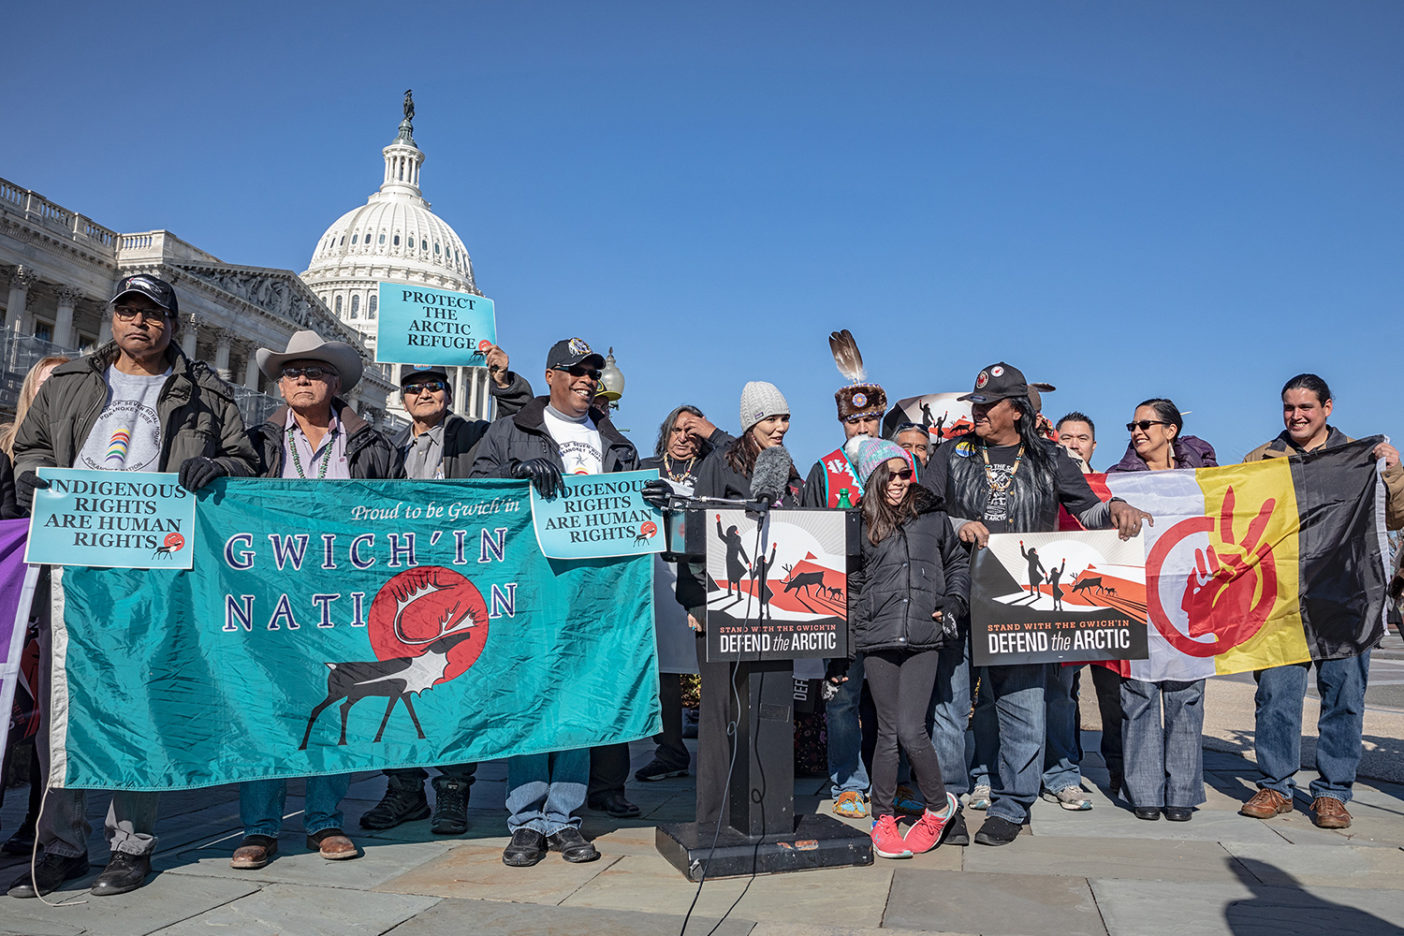 Members of the Gwich'in Steering Committee at a press conference in front of the United States Capitol in Washington, DC. The Gwich'in know the fight to protect the Refuge isn't just about protecting their own backyard, but about protecting sacred spaces everywhere. Photo: Keri Oberly